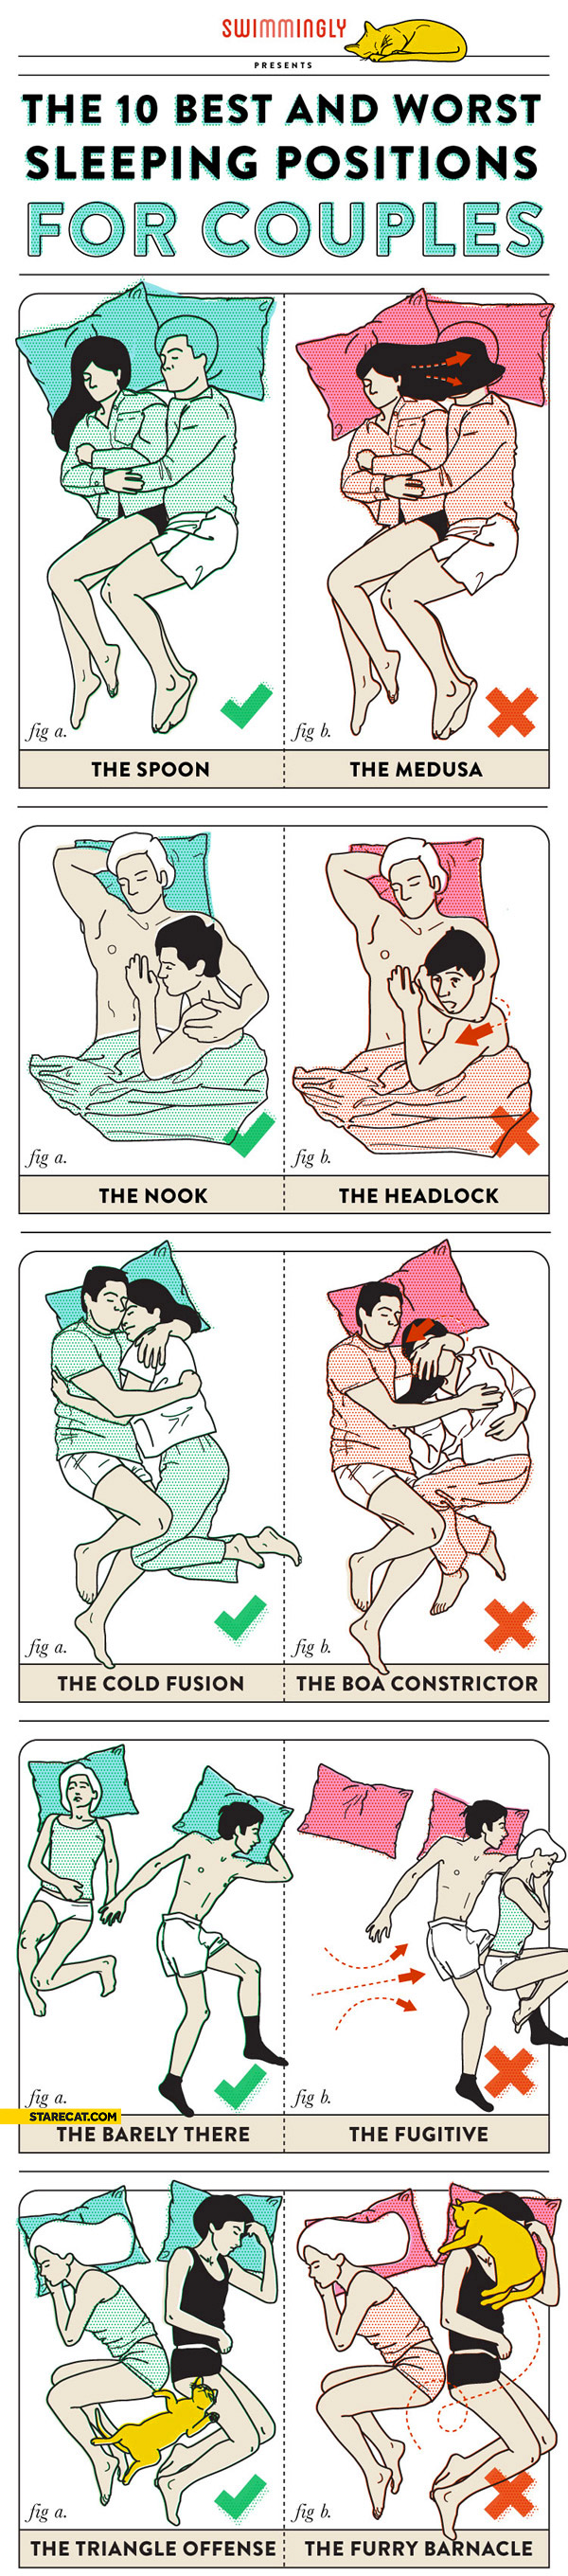 10 best and worst sleepieng positions for couples